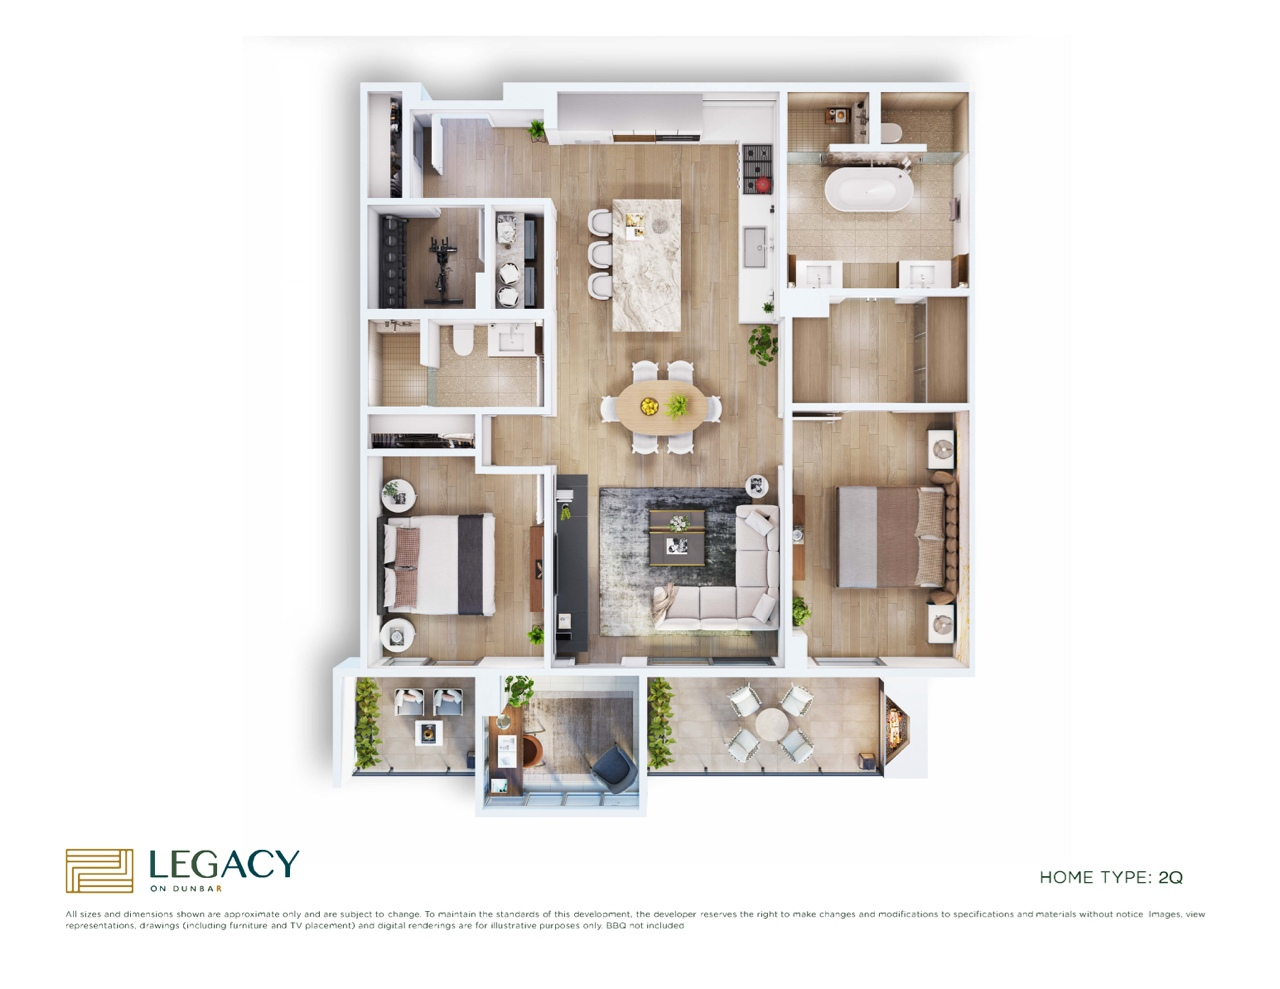 2 bed-2Q-Floorplan